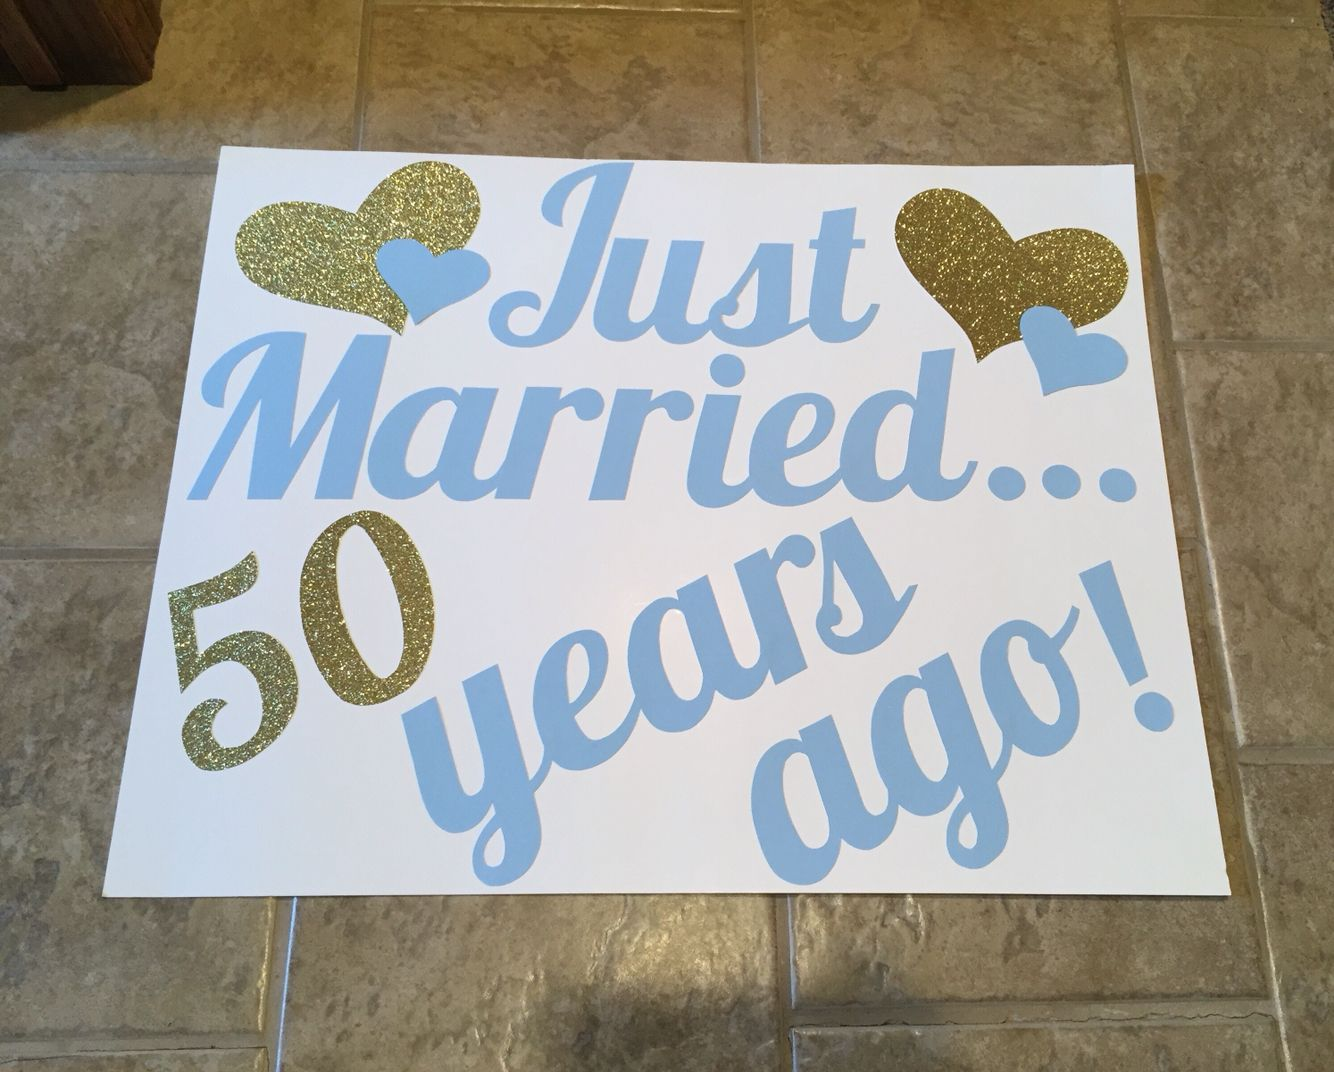 Decoration ideas for 50th wedding anniversary celebration  Just married years ago th anniversary decorations  Bodas